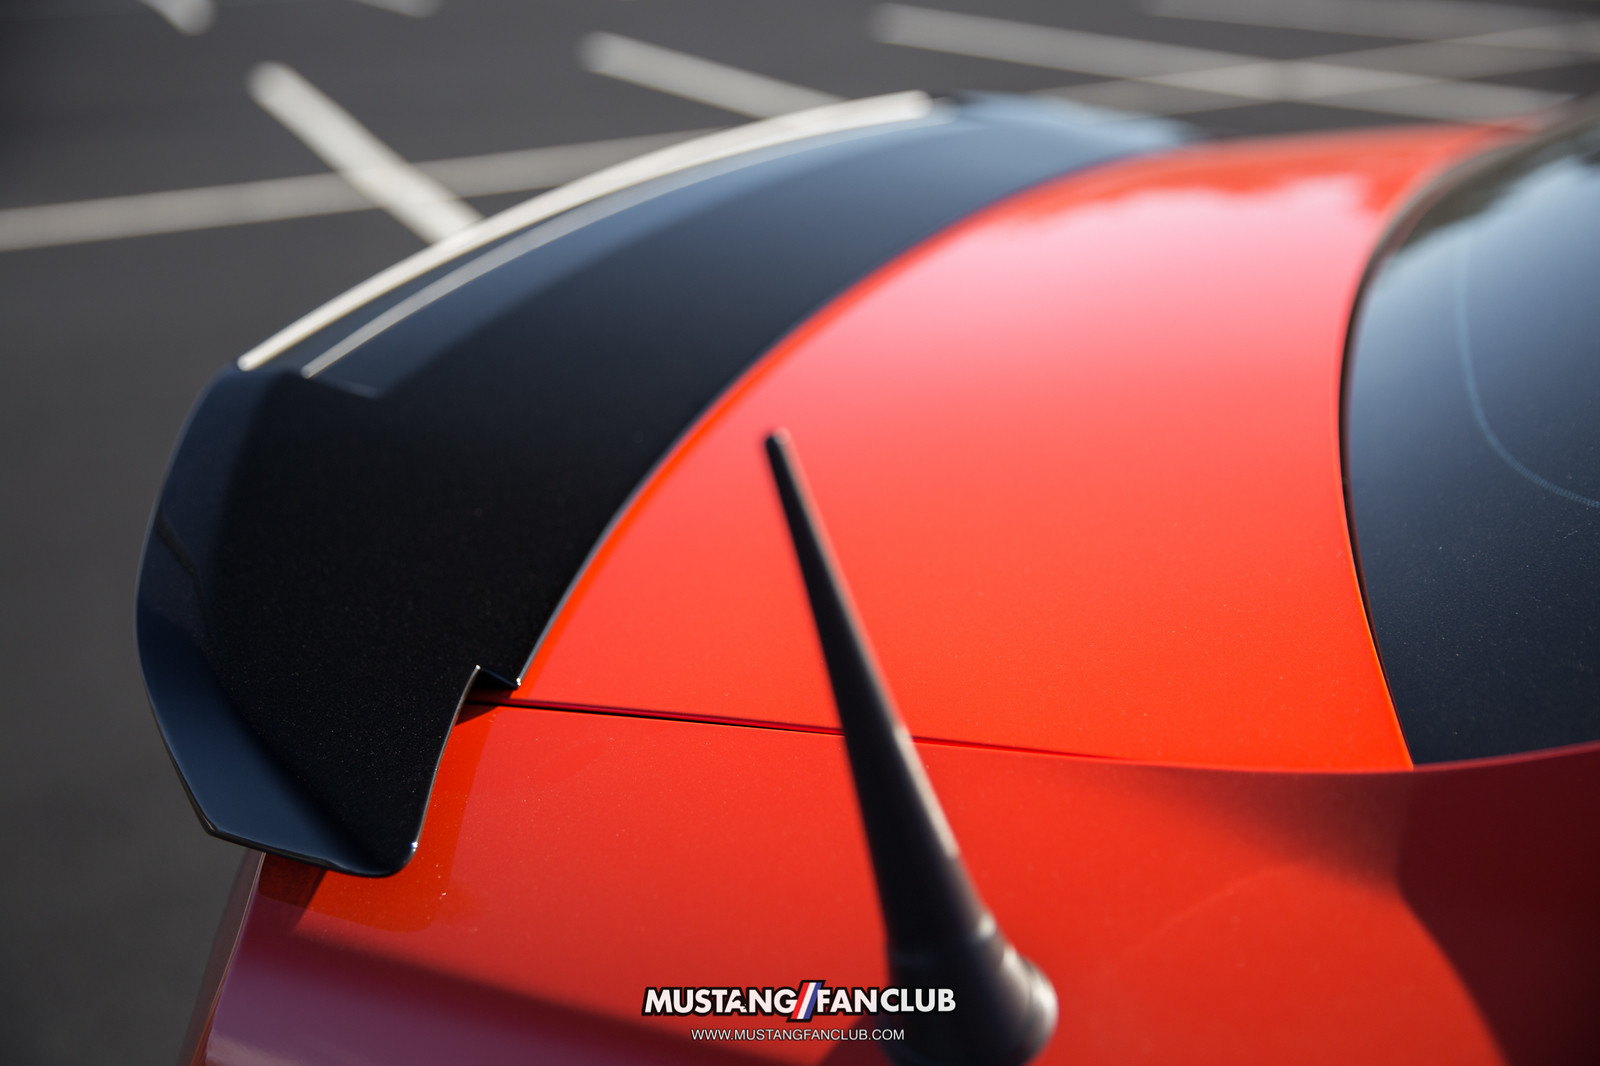 gt500 spoiler shorty antenna ford mustang boss 302 competition orange gloss black mustangfanclub